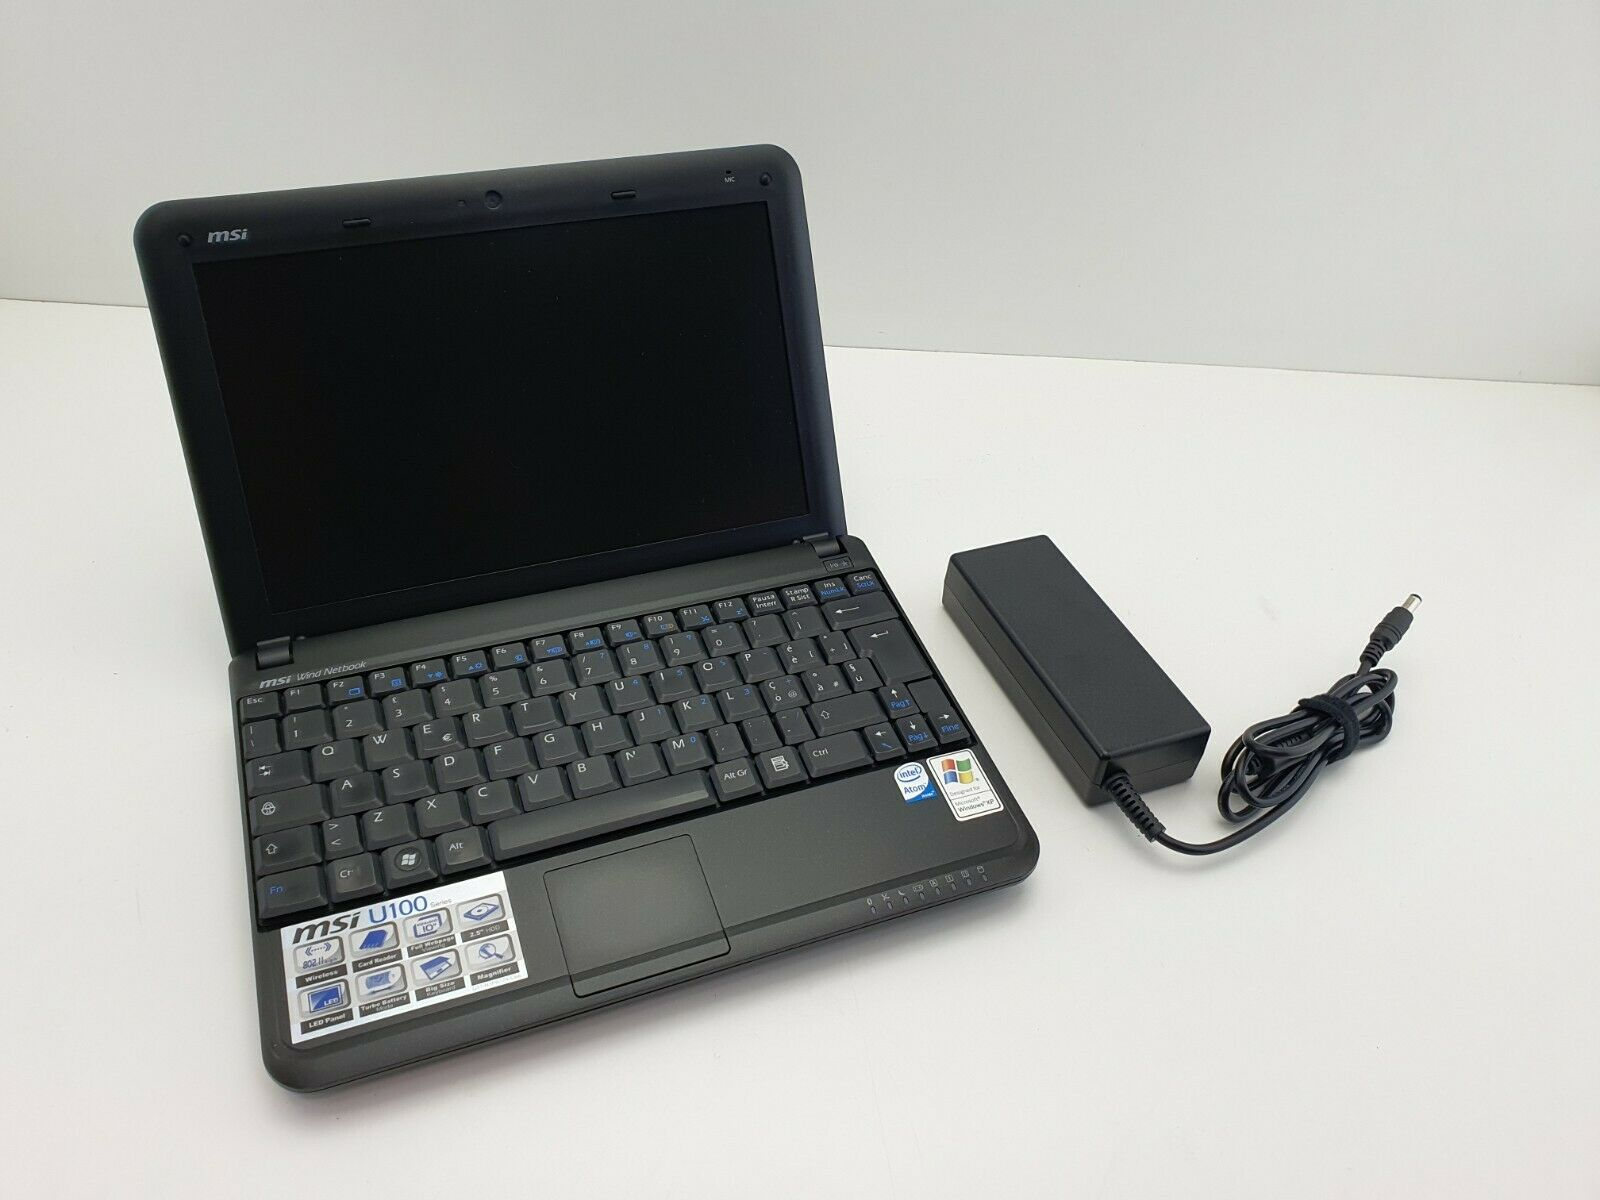 PC Netbook MSI U100 Atom 1.6 GHZ 2GB Ram - 160GB HD Webcam + microfono